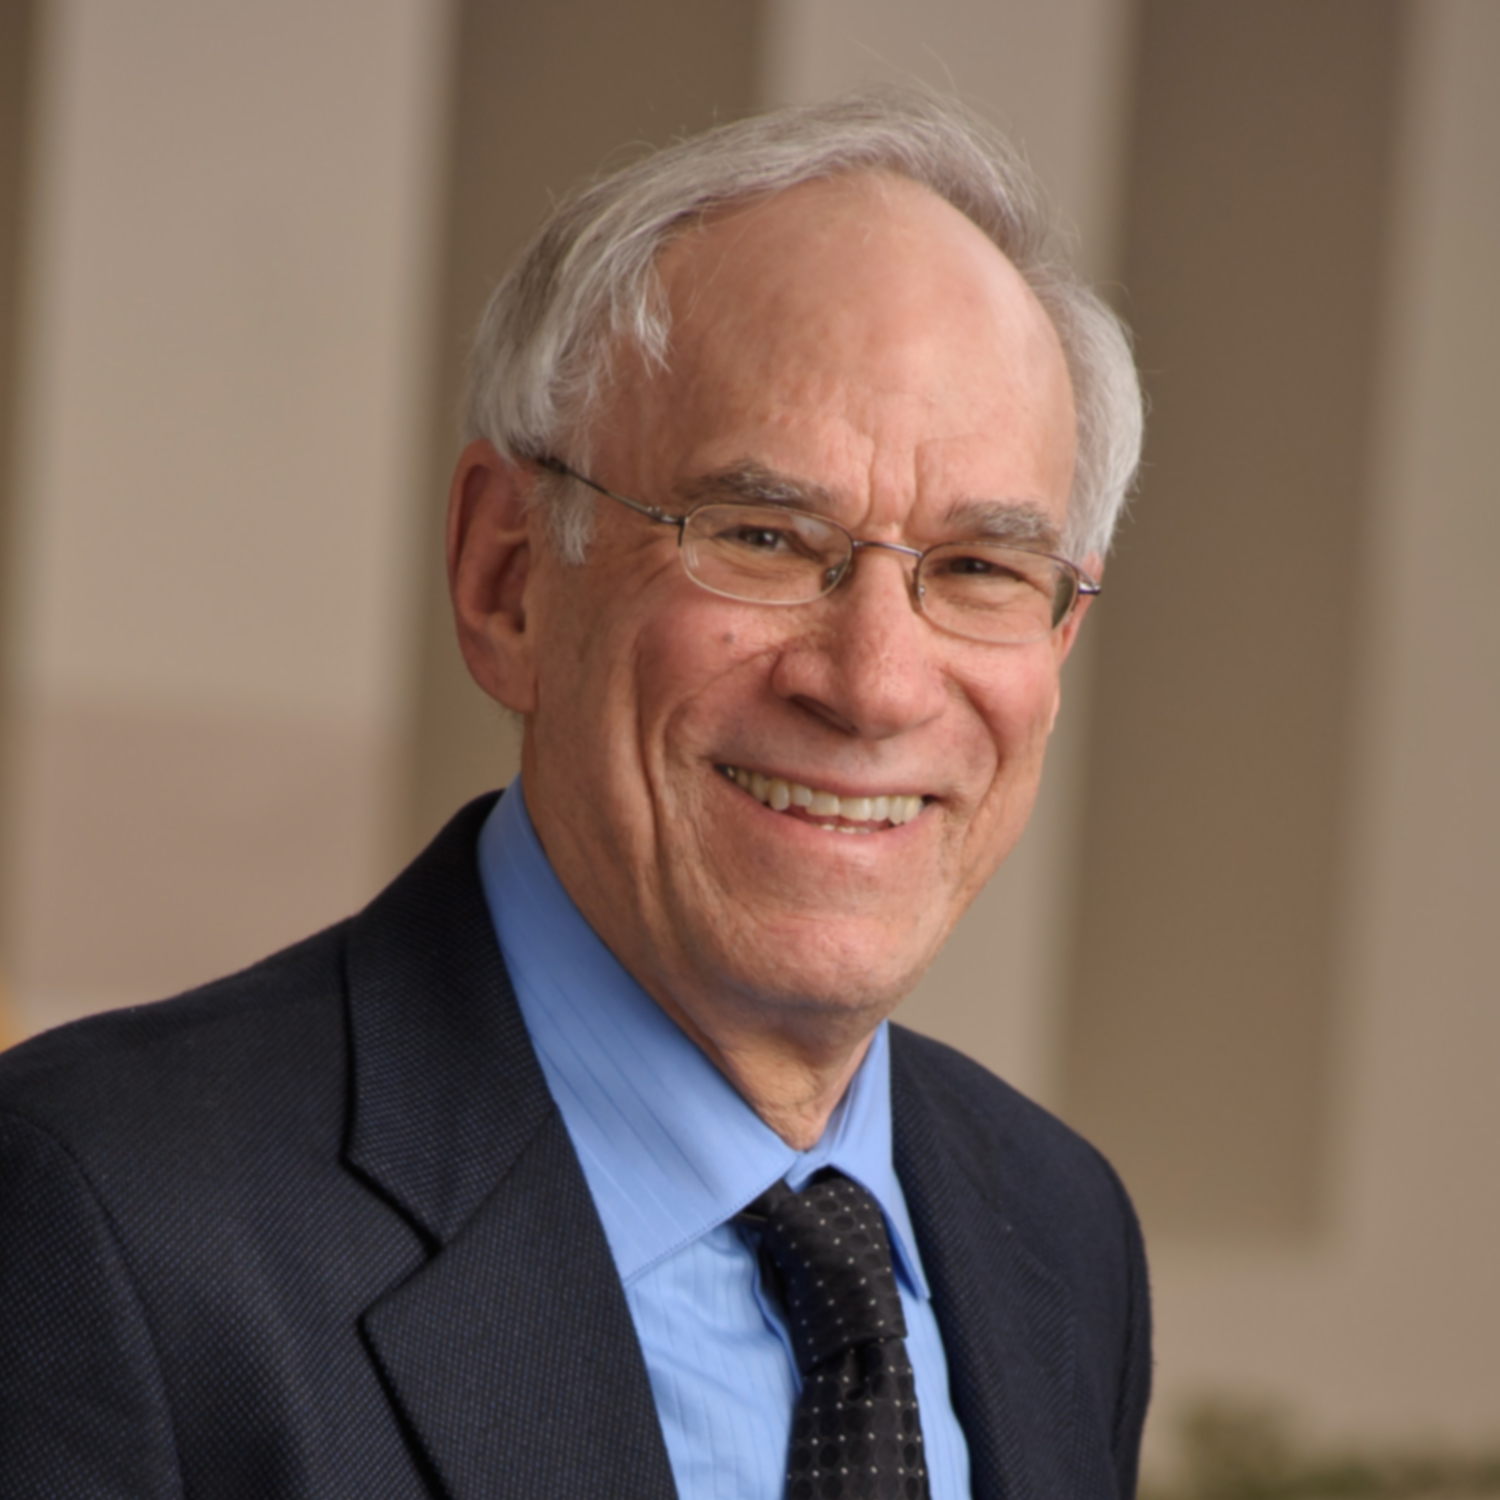 Professor Fred Grinnell